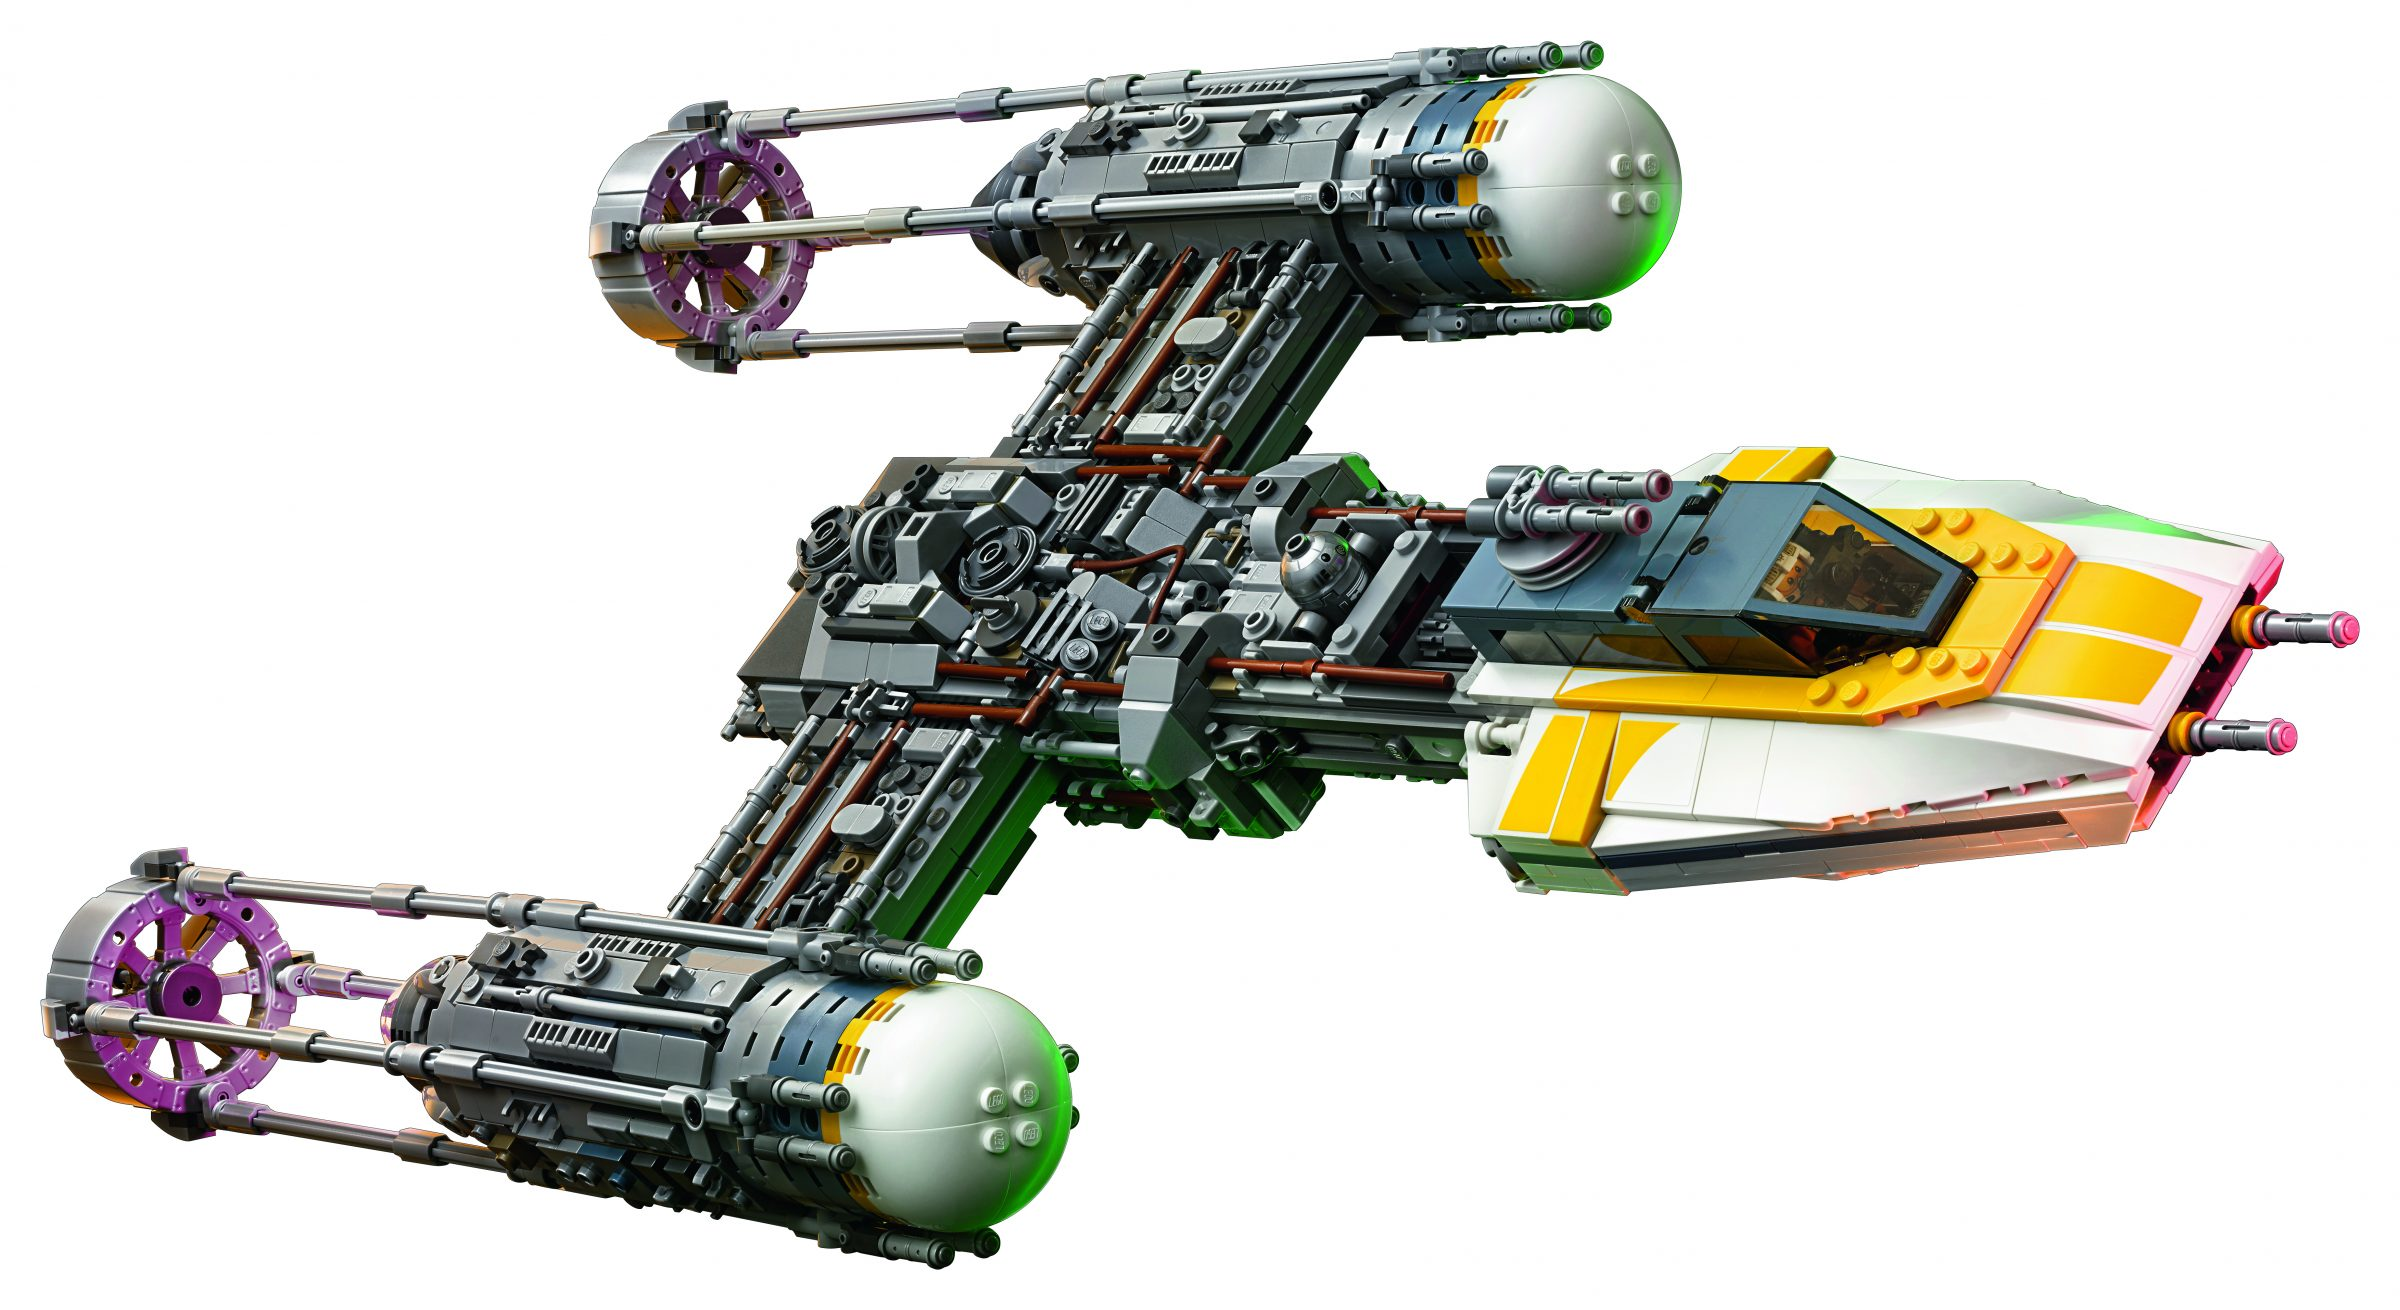 Lego Star Wars Ucs 75181 Y Wing Starfighter Front View The